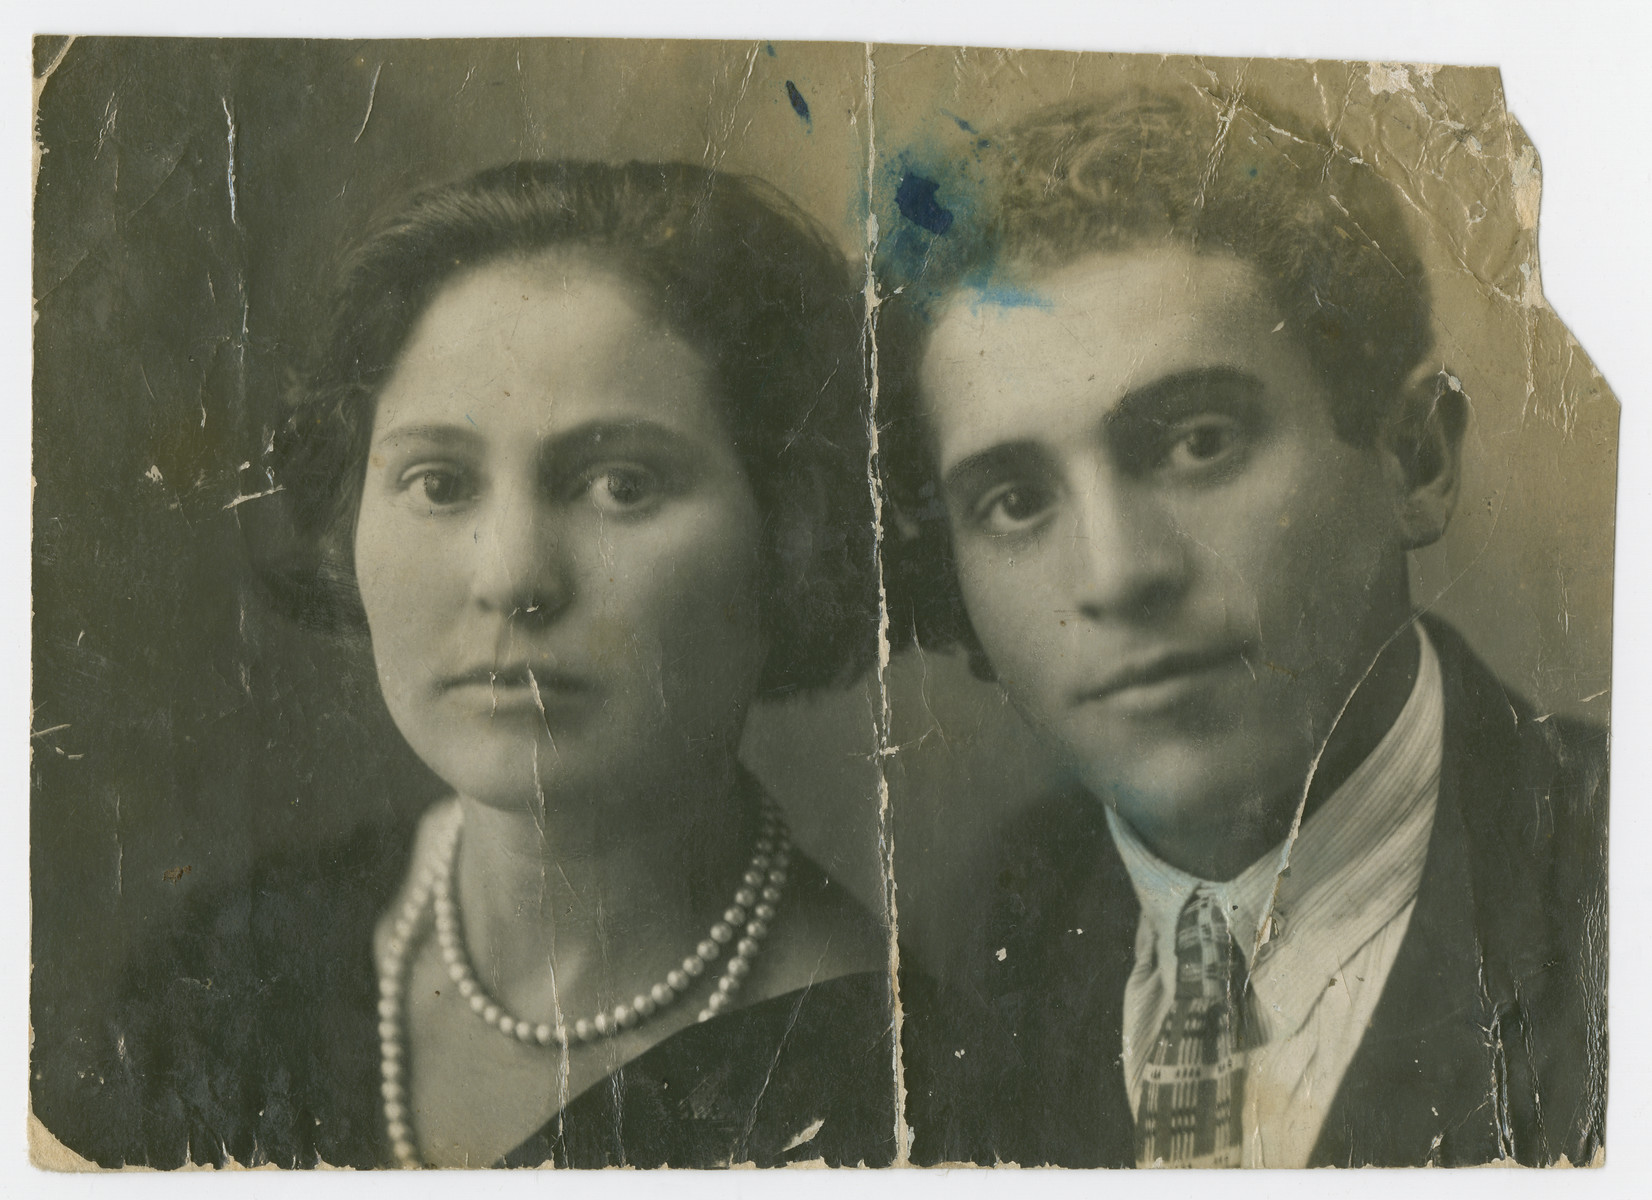 Studio portrait of Sosi Fuler (nee Pasternak) and her brother Feivish Pasternak.   Sosi was killed after the German occupation of Orinin, while Feivish survived the Holocaust.